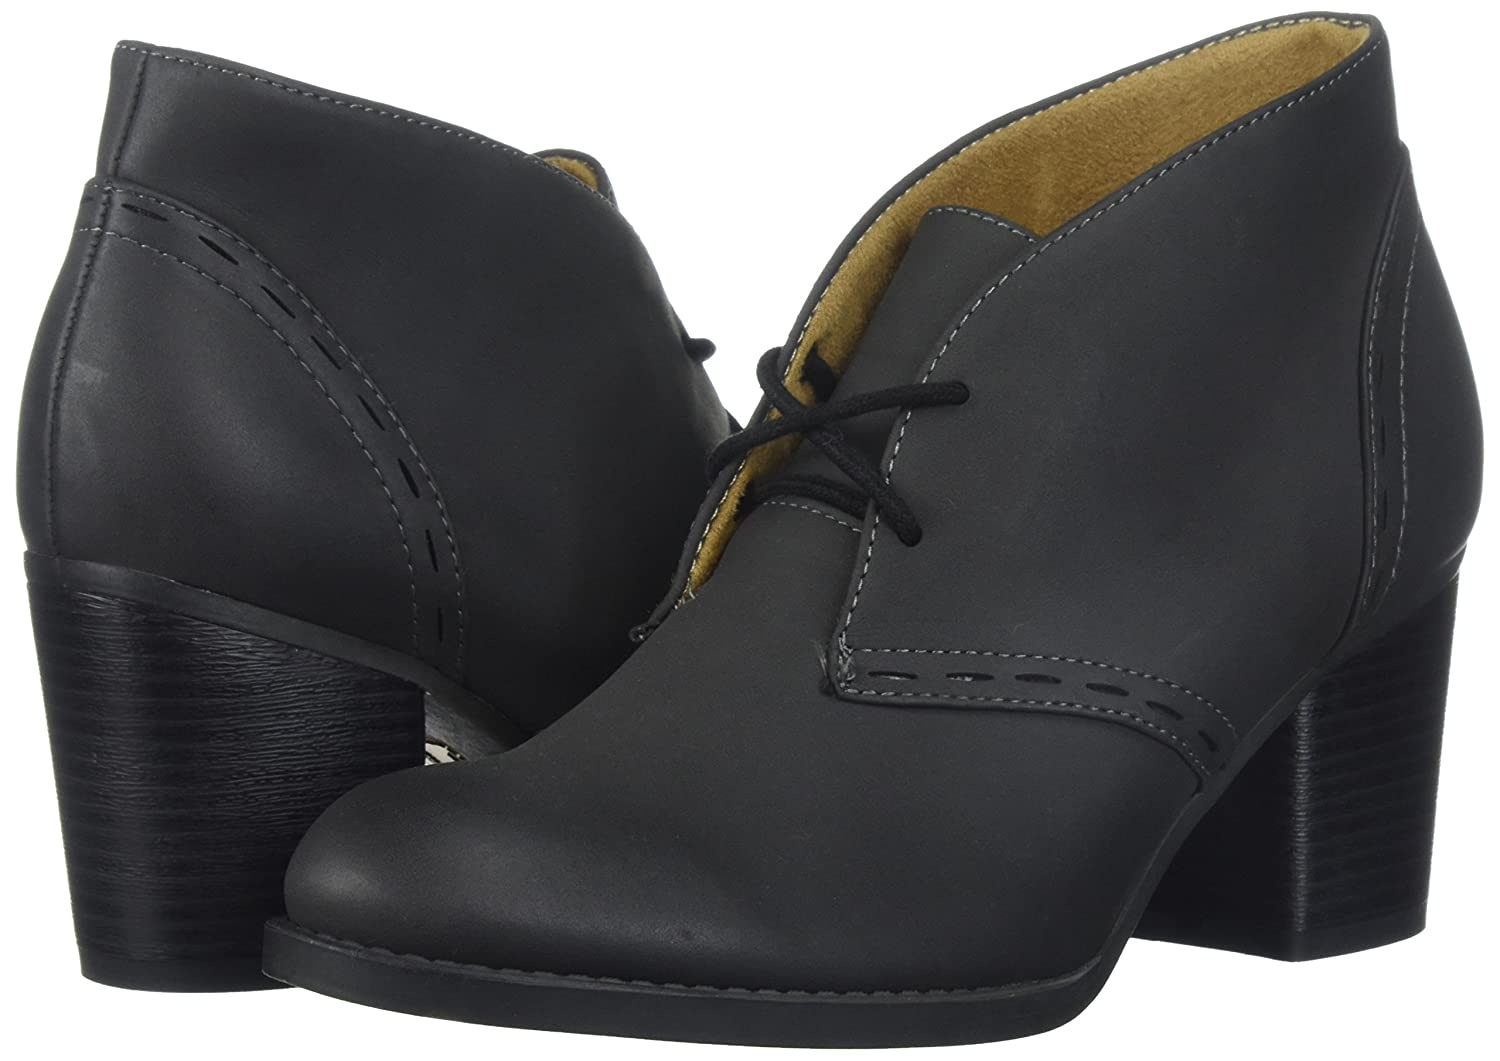 NATURAL SOUL Women's Tracy Ankle Boot B074SZ9T2C 6 W US|Black